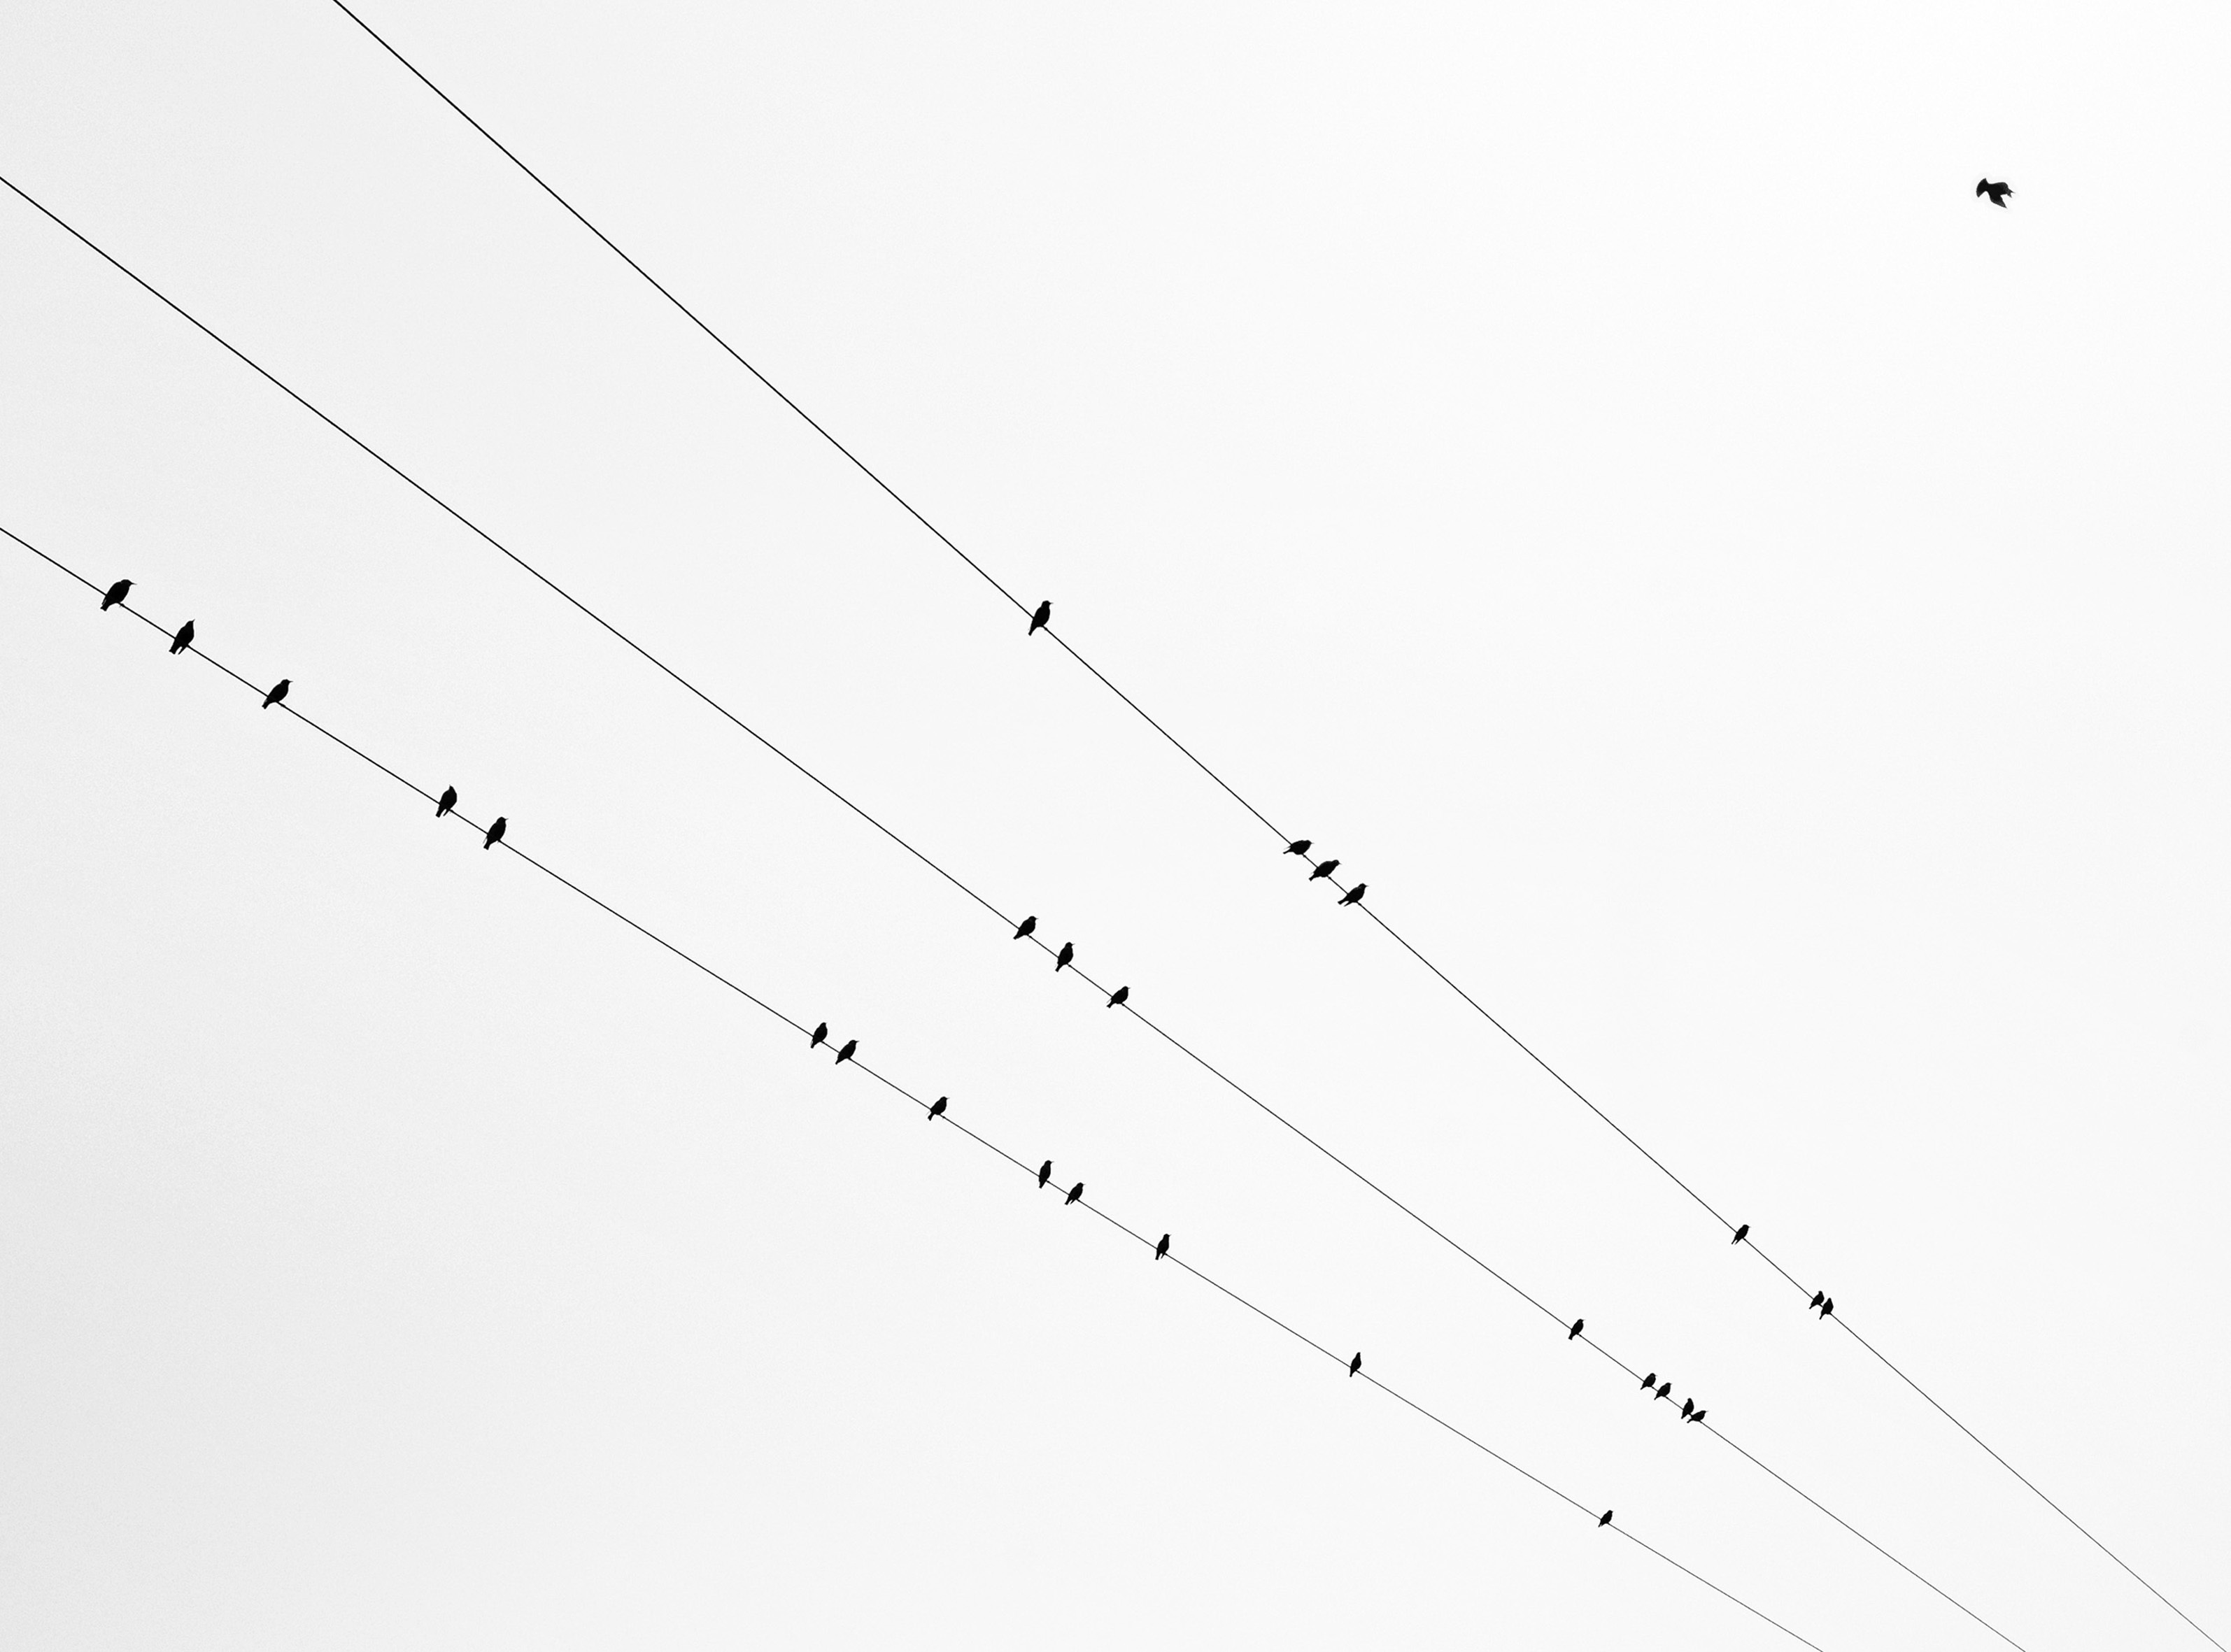 135847 download wallpaper Minimalism, Wires, Wire, Bw, Chb, Birds screensavers and pictures for free